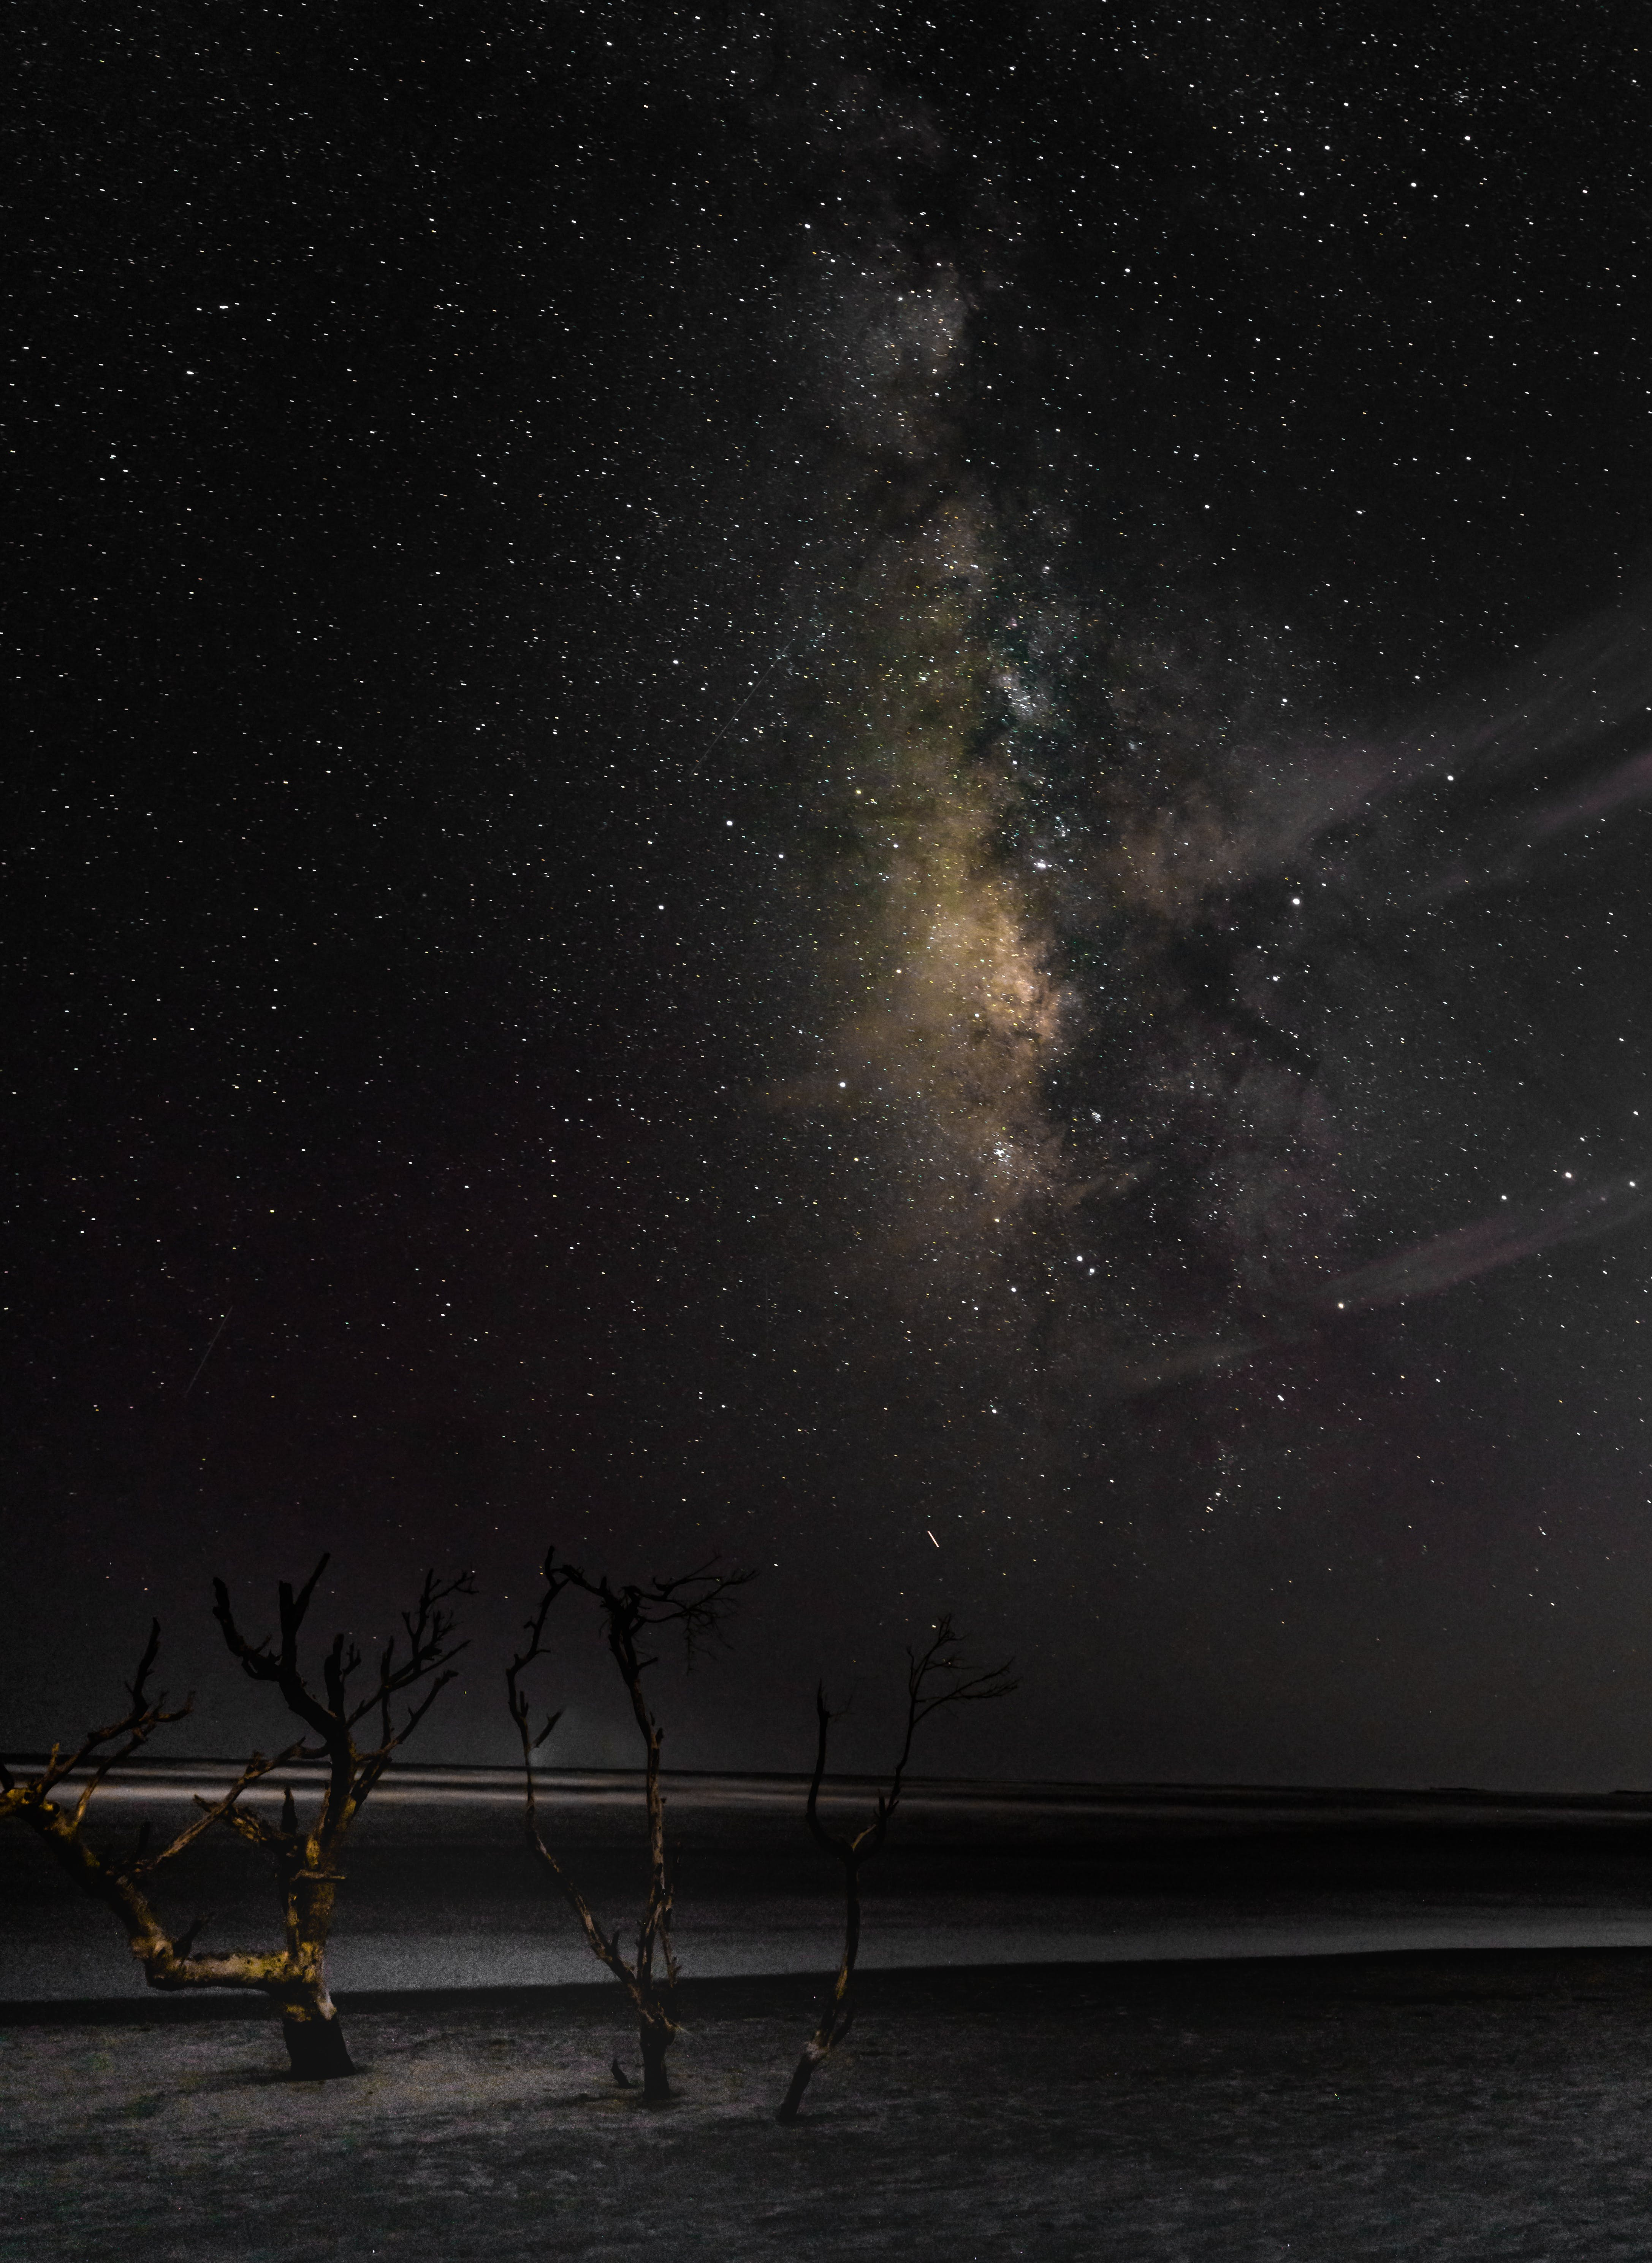 Bare Tree Under Starry Sky